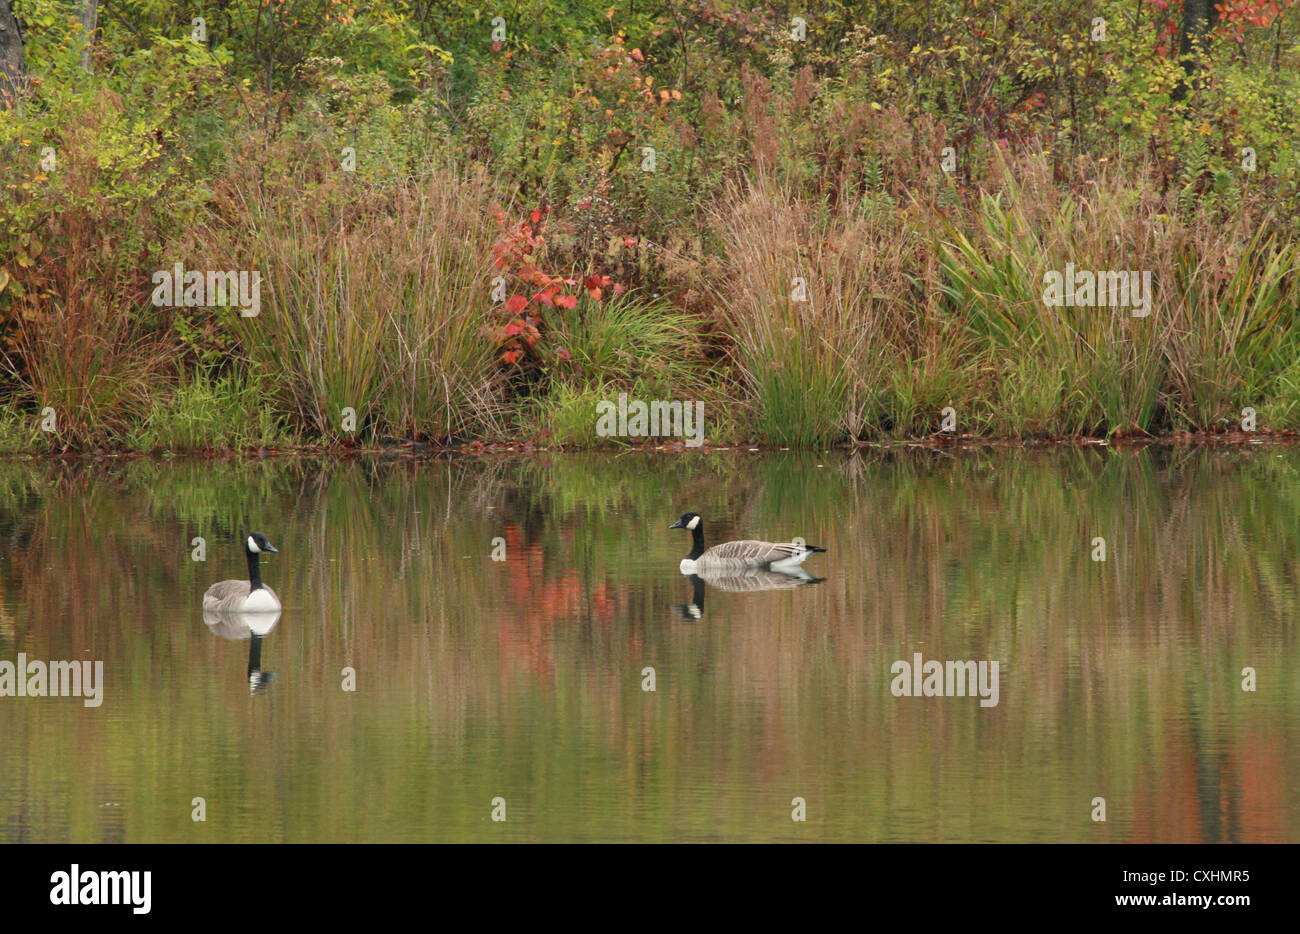 Two Canada geese on a rural pond. - Stock Image